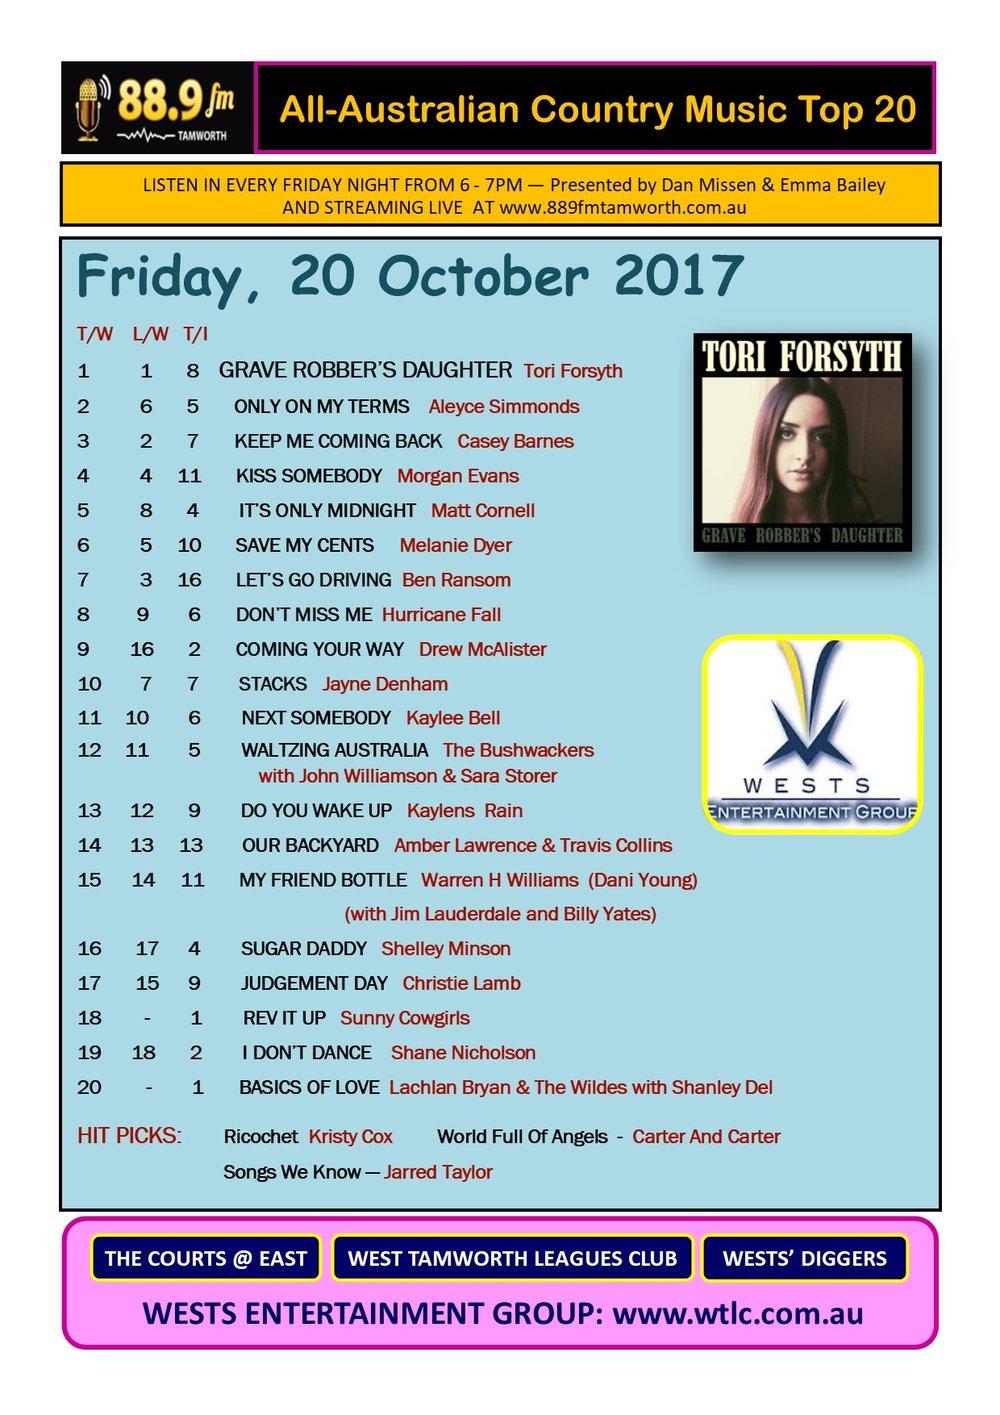 Australian Country Music Top 20 - October 20